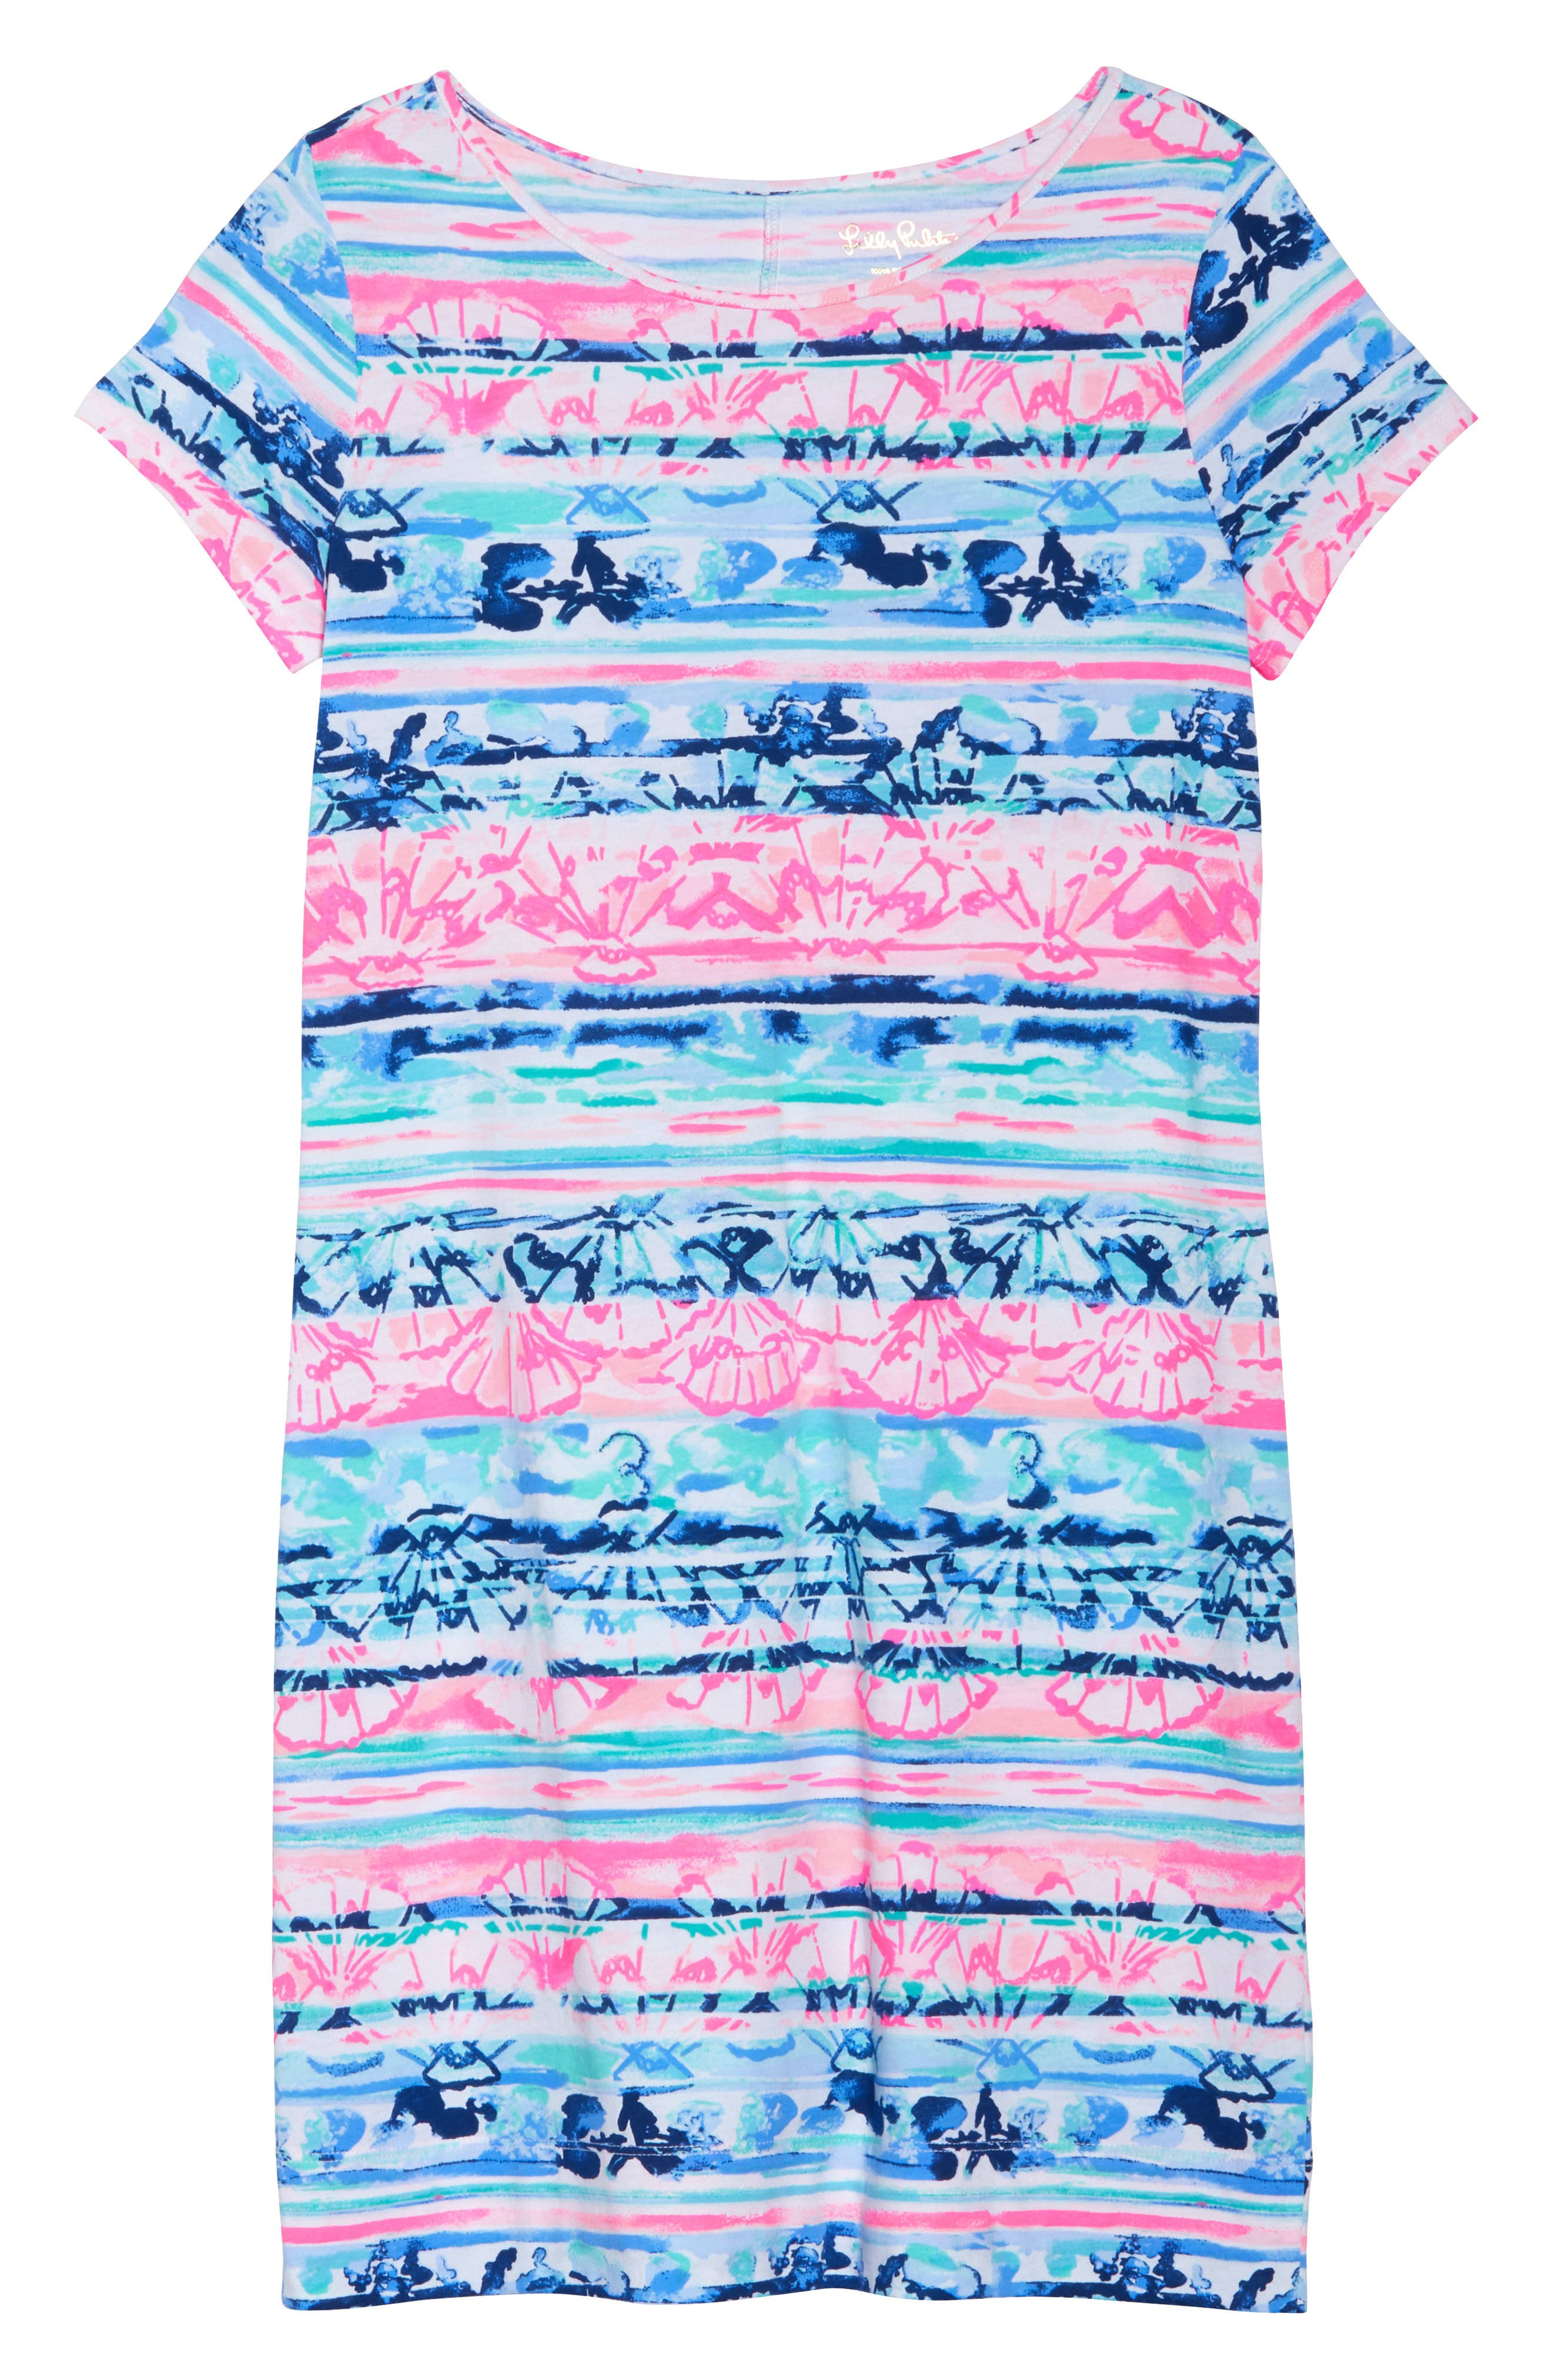 Marlowe T-Shirt Dress,                             Alternate thumbnail 7, color,                             MULTI A WAVE FROM IT